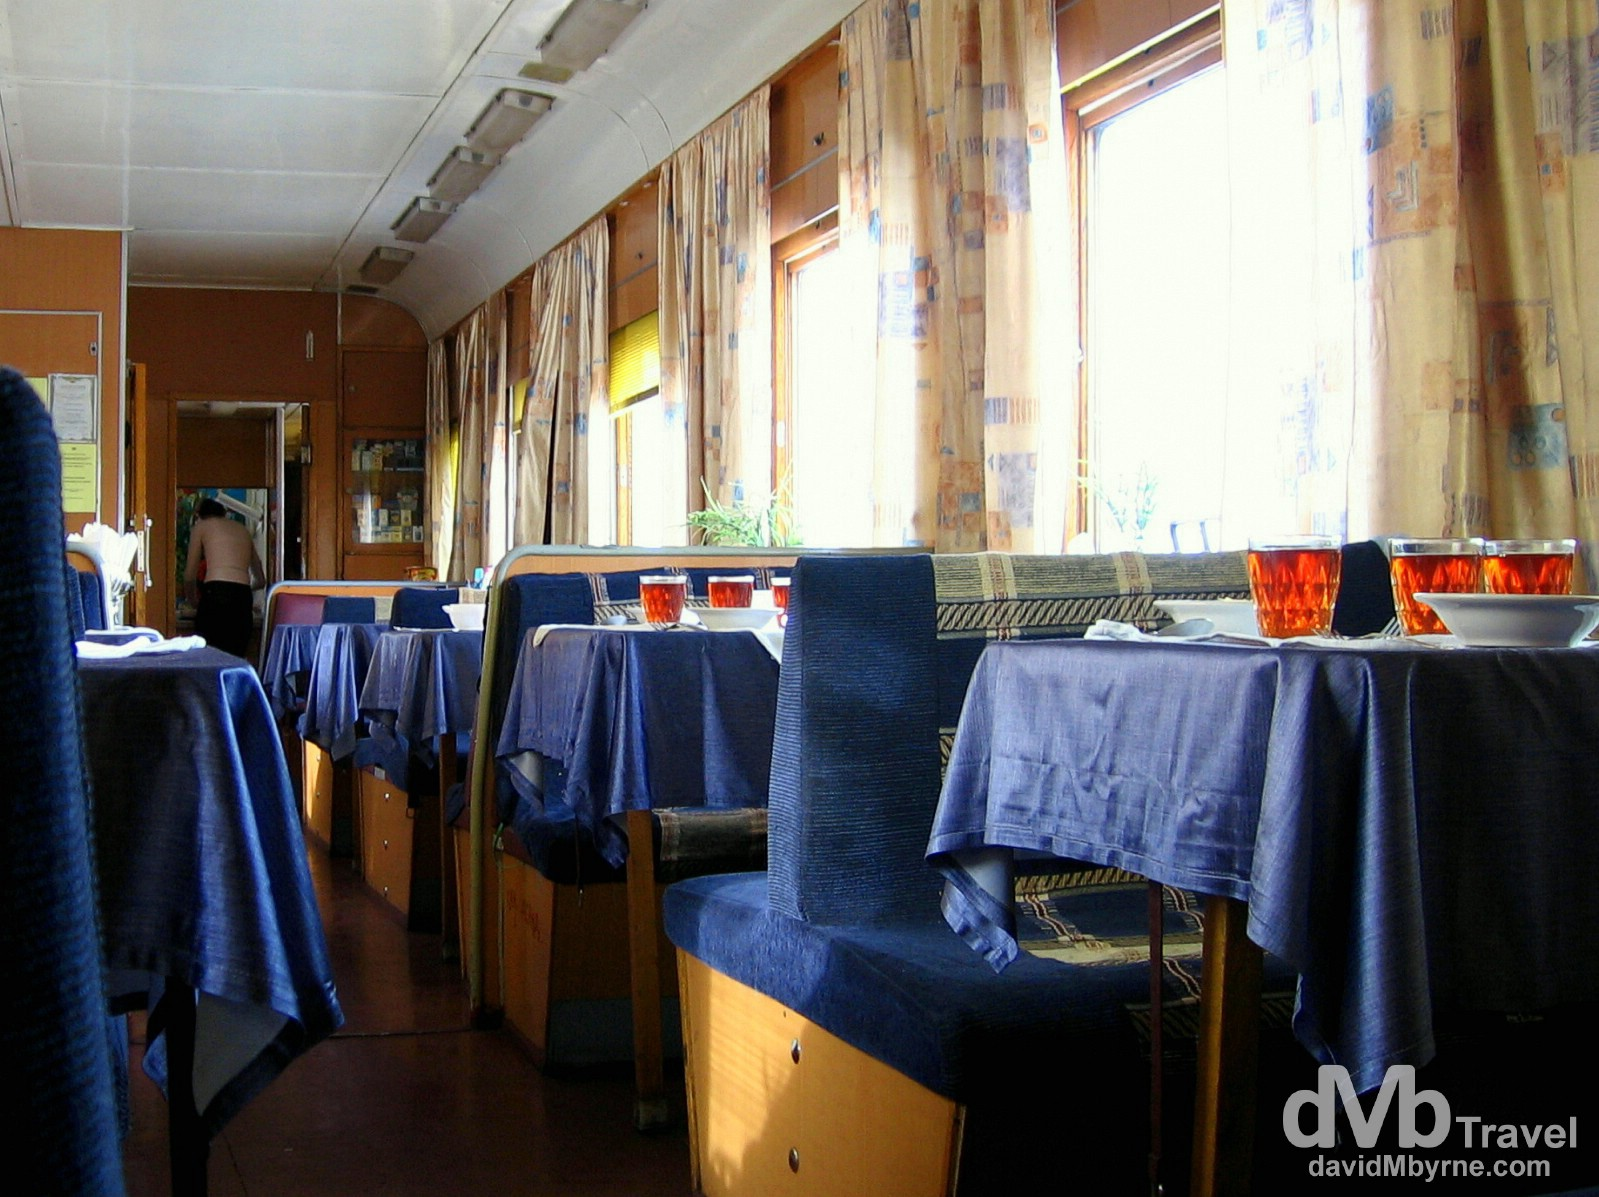 Dining car of the Trans-Siberian from Irkutsk to Tyumen, Russia. February 20, 2006.